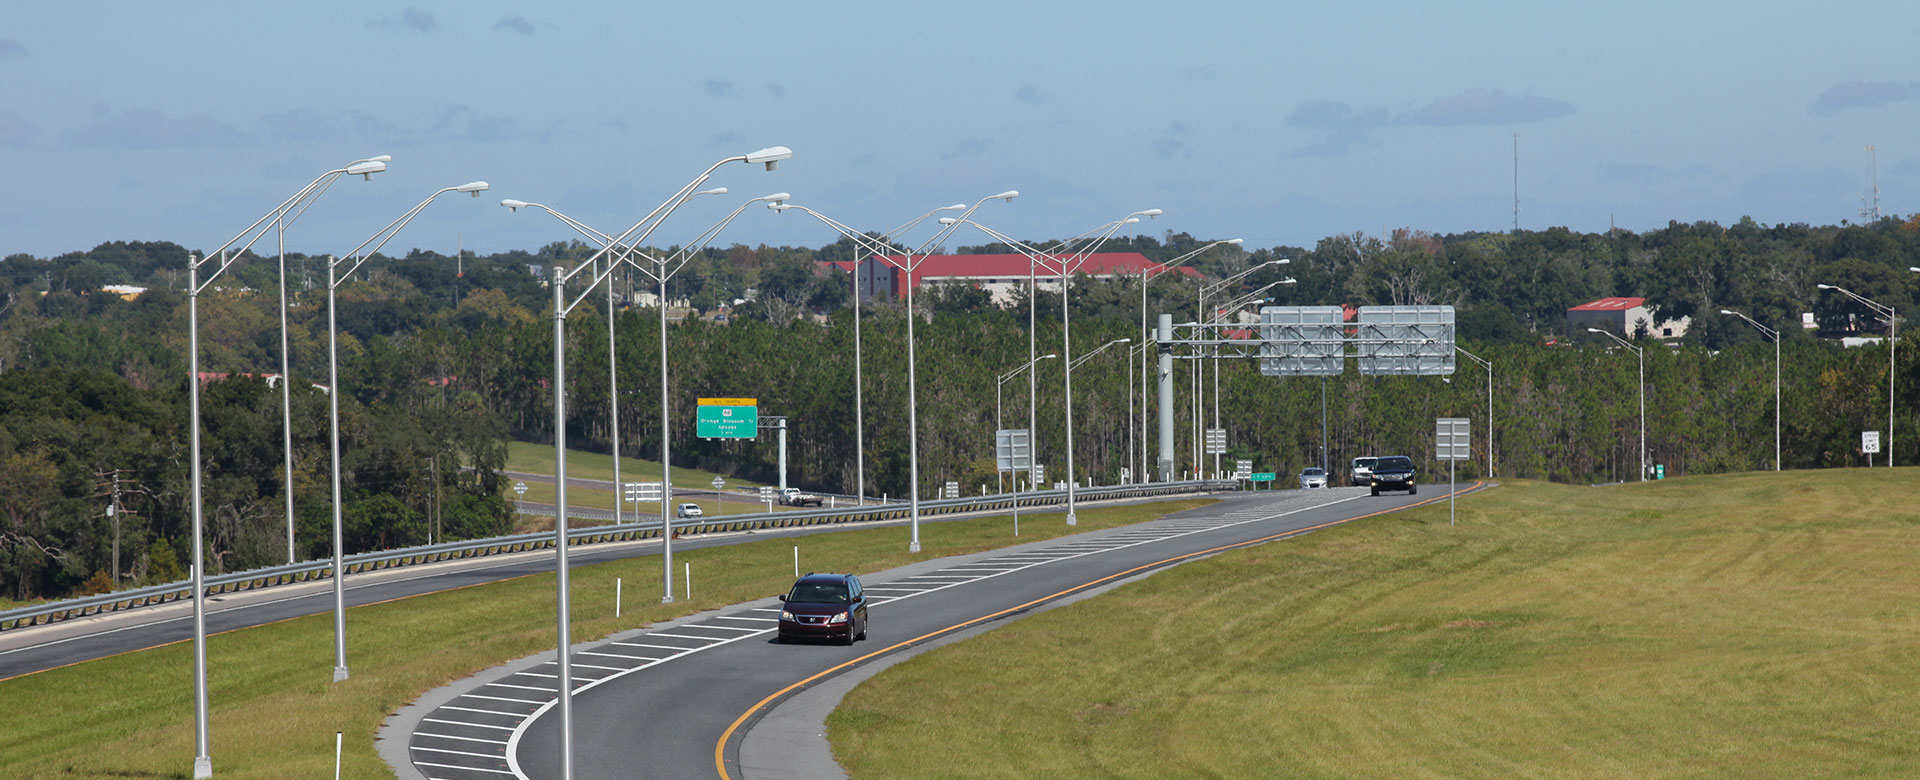 Light traffic on Central Florida Expressway toll road 451